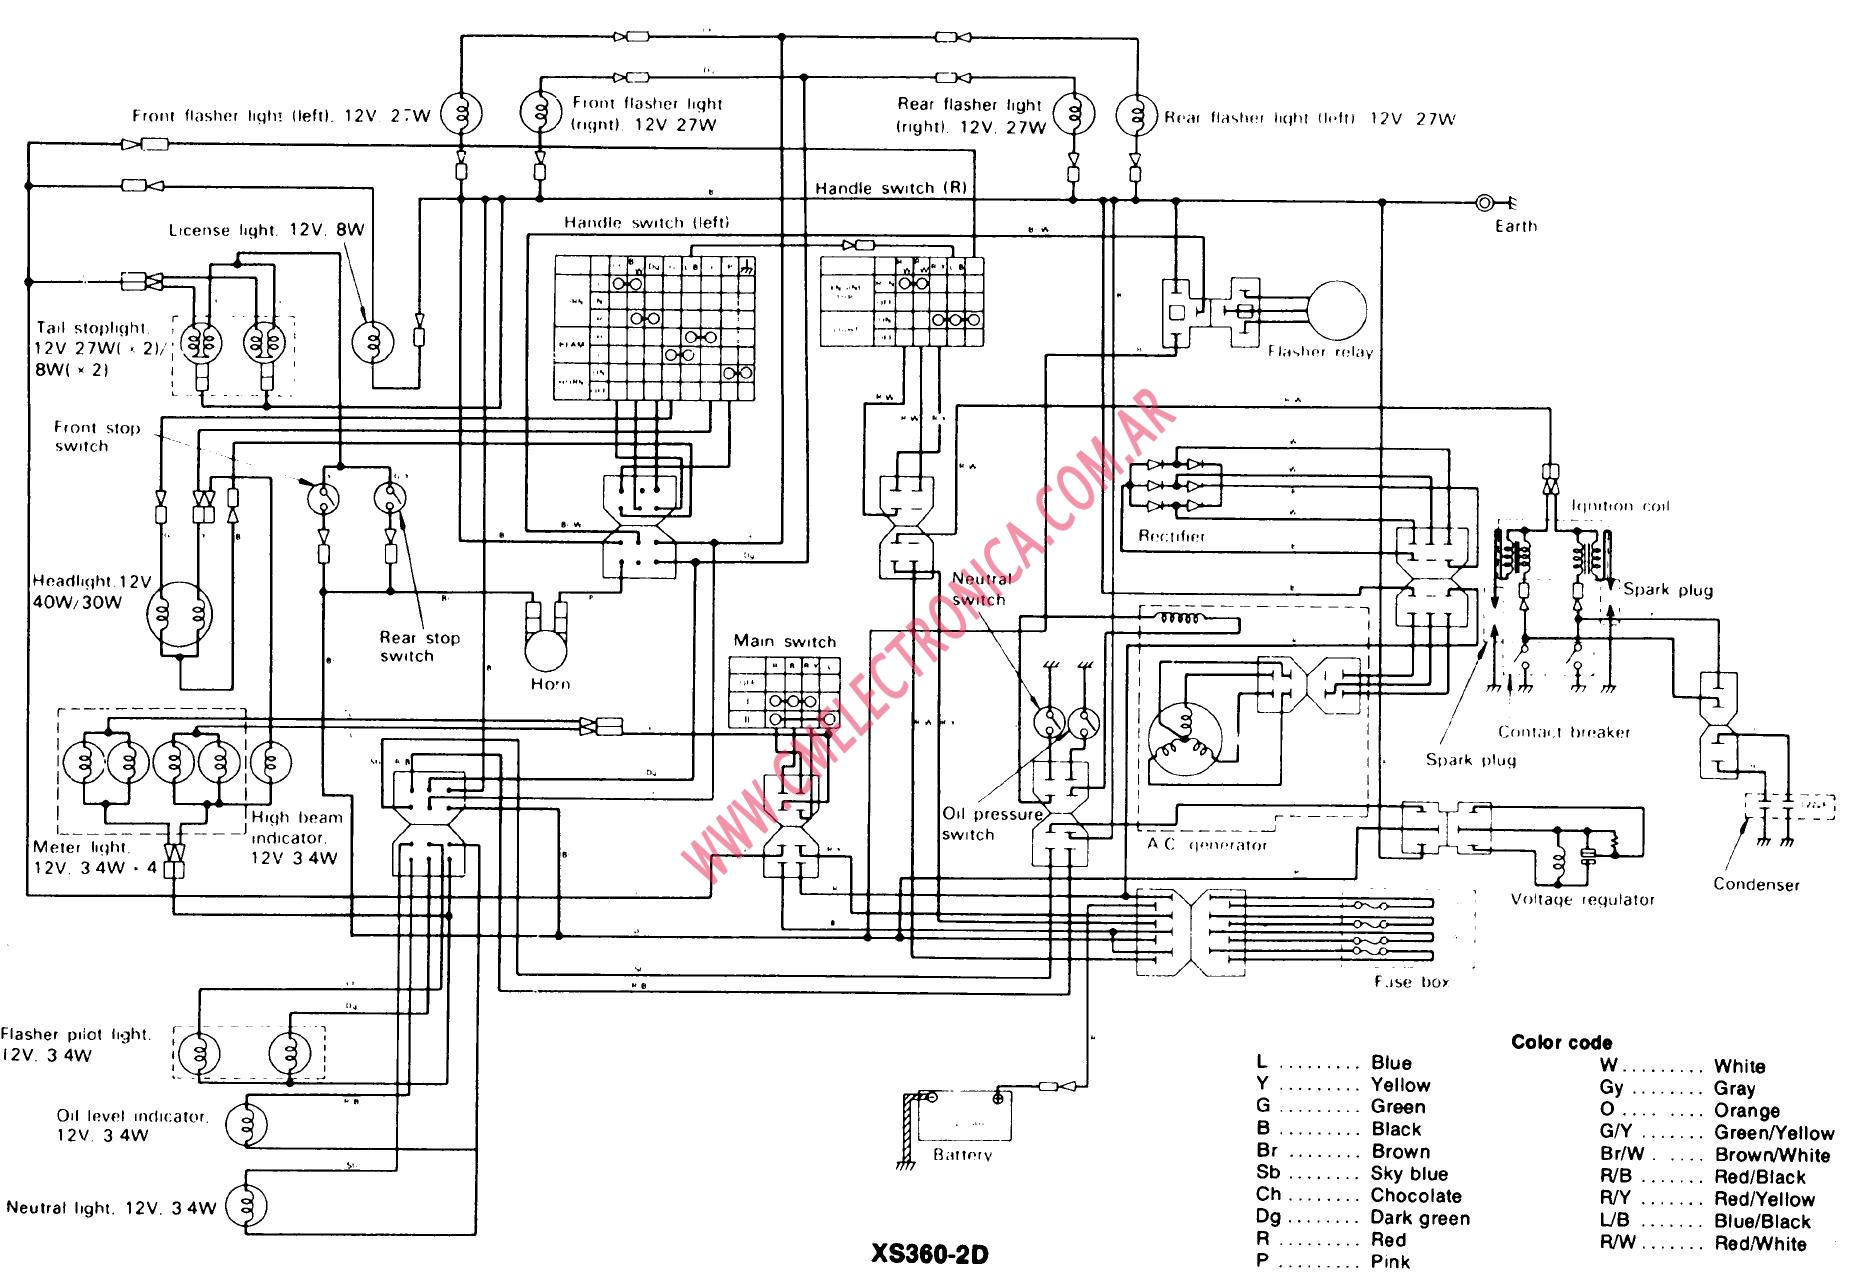 r6r wiring diagram yamaha lb80    wiring       diagram       wiring       diagram    database  yamaha lb80    wiring       diagram       wiring       diagram    database